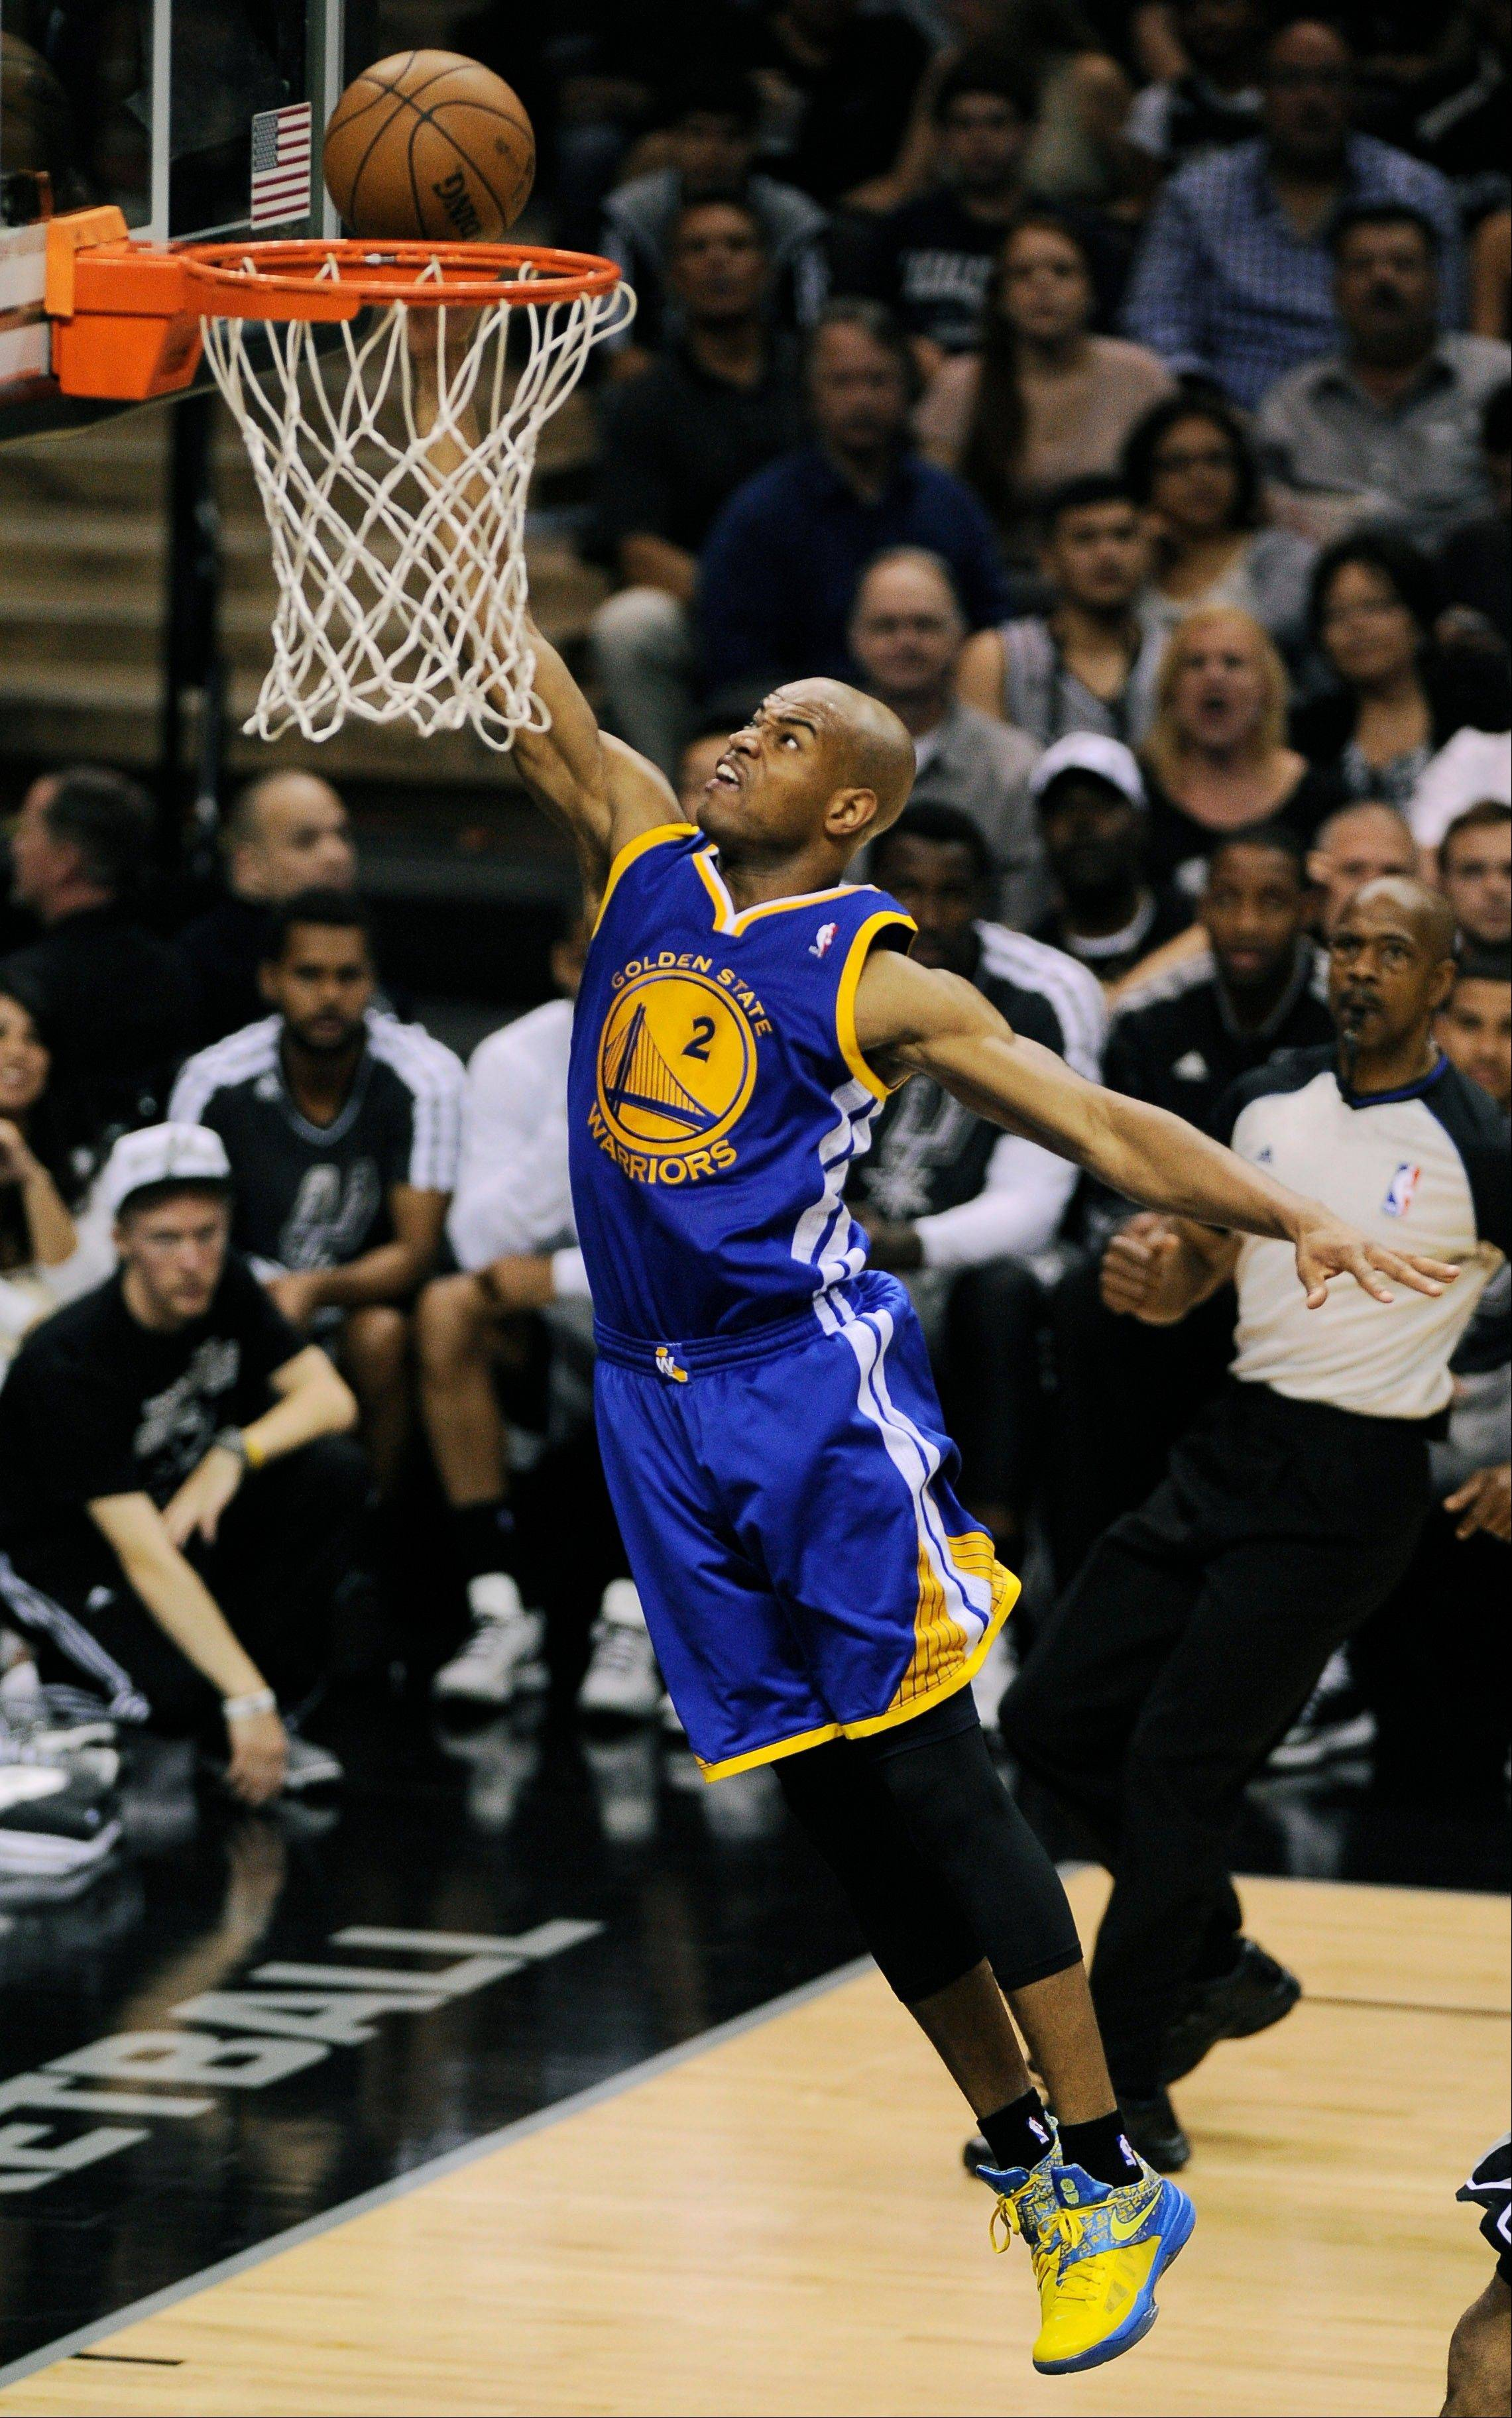 Golden State Warriors' Jarrett Jack shoots against the San Antonio Spurs during the second half of Game 5 of the Western Conference semifinal NBA basketball playoff series, Tuesday, May 14, 2013, in San Antonio. (AP Photo/Darren Abate)